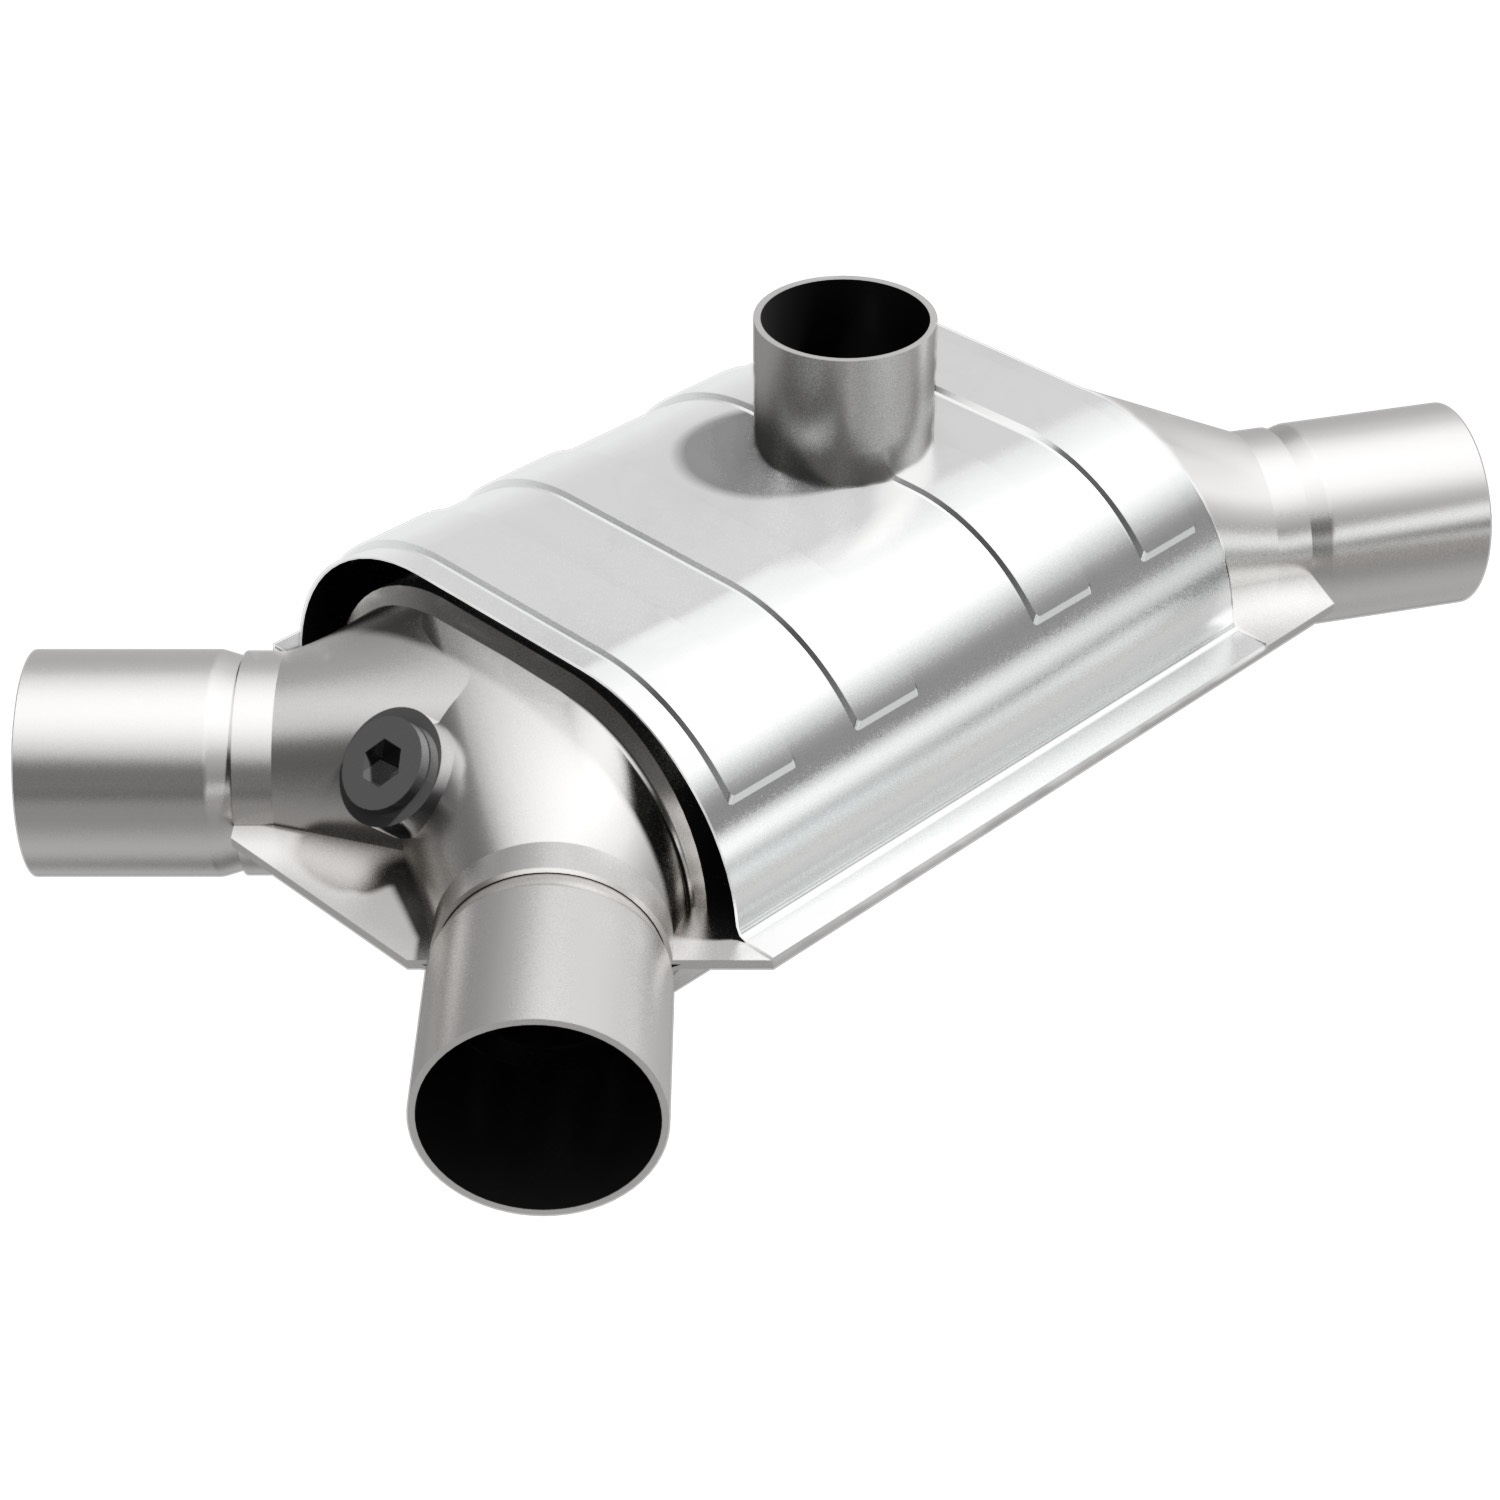 MagnaFlow Exhaust Products Catalytic Converter (33002)